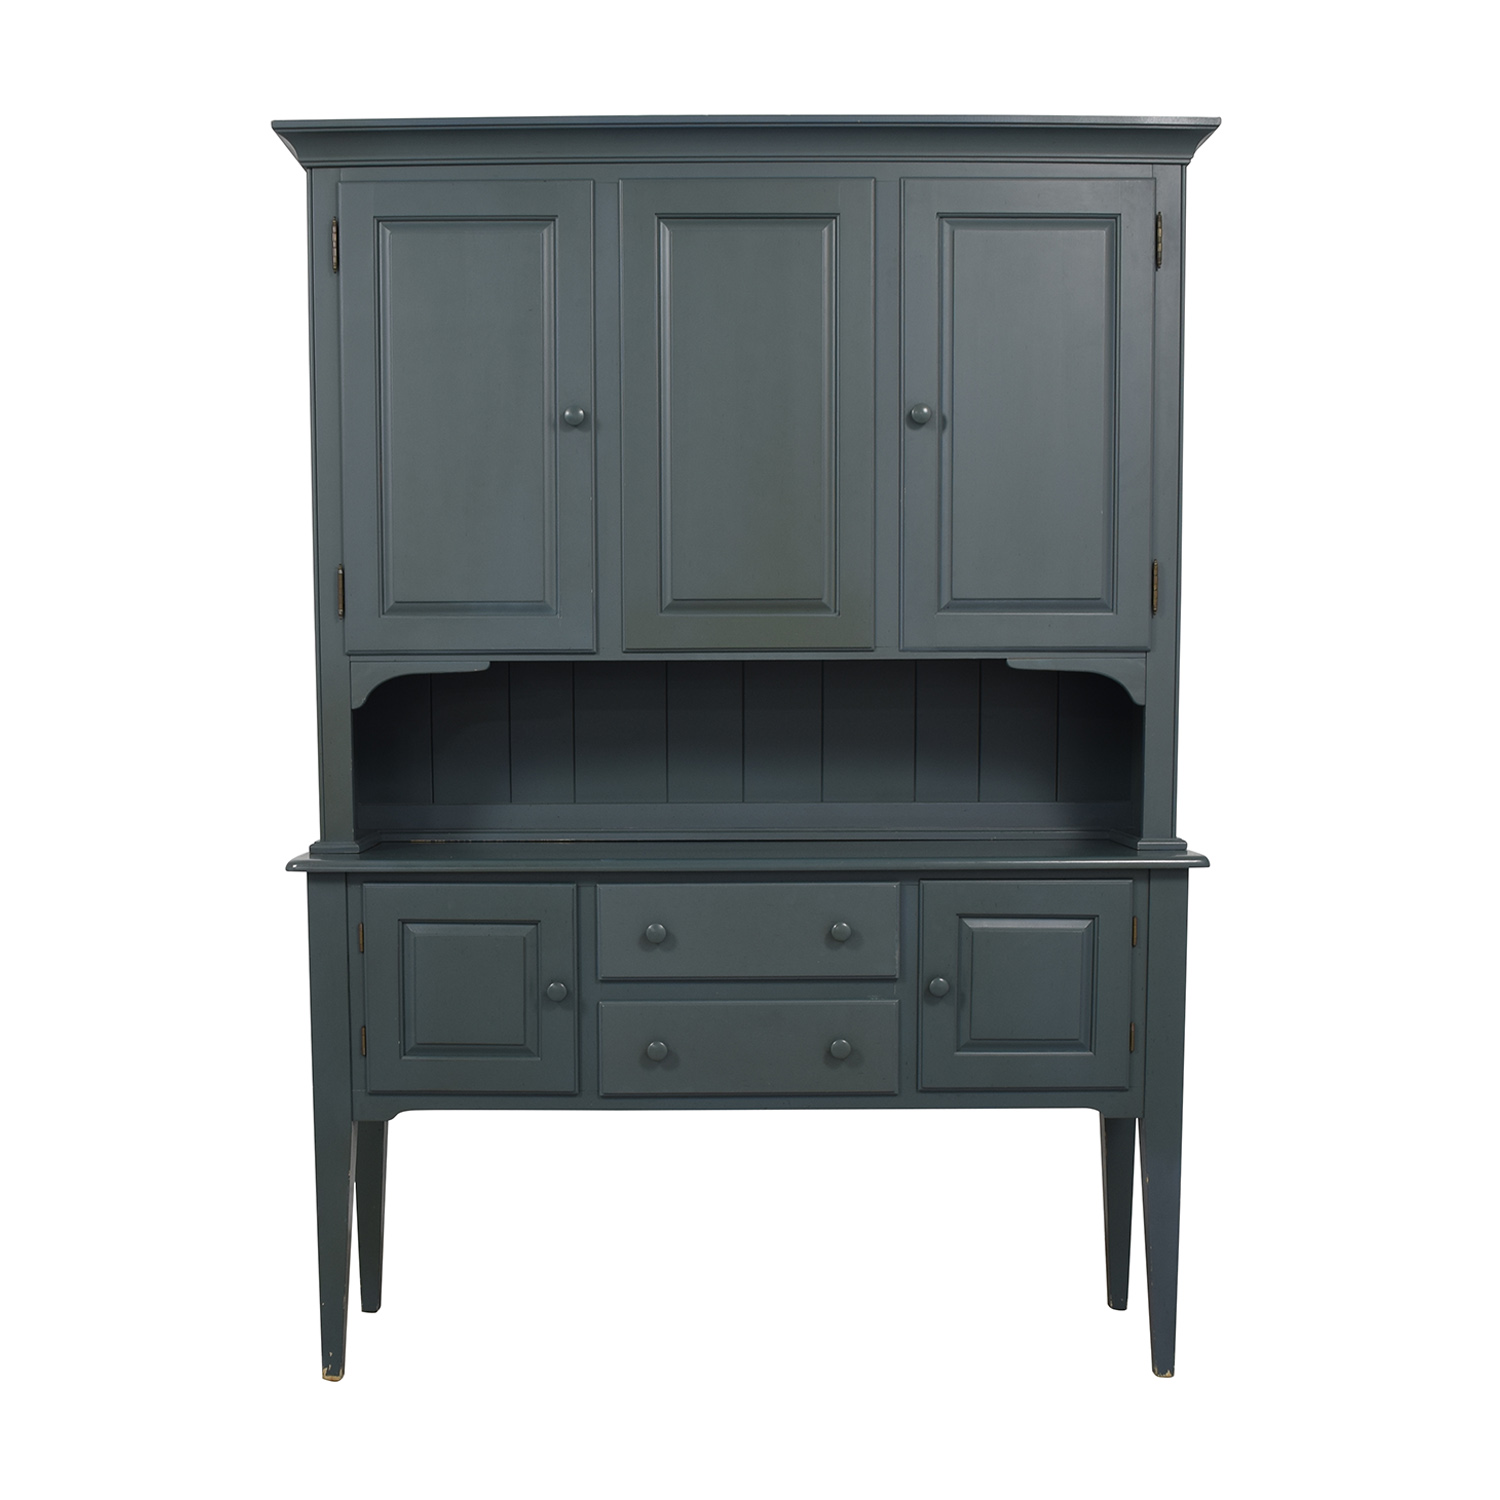 Nichols & Stone Nichols & Stone Teal Two-Drawer Hutch second hand